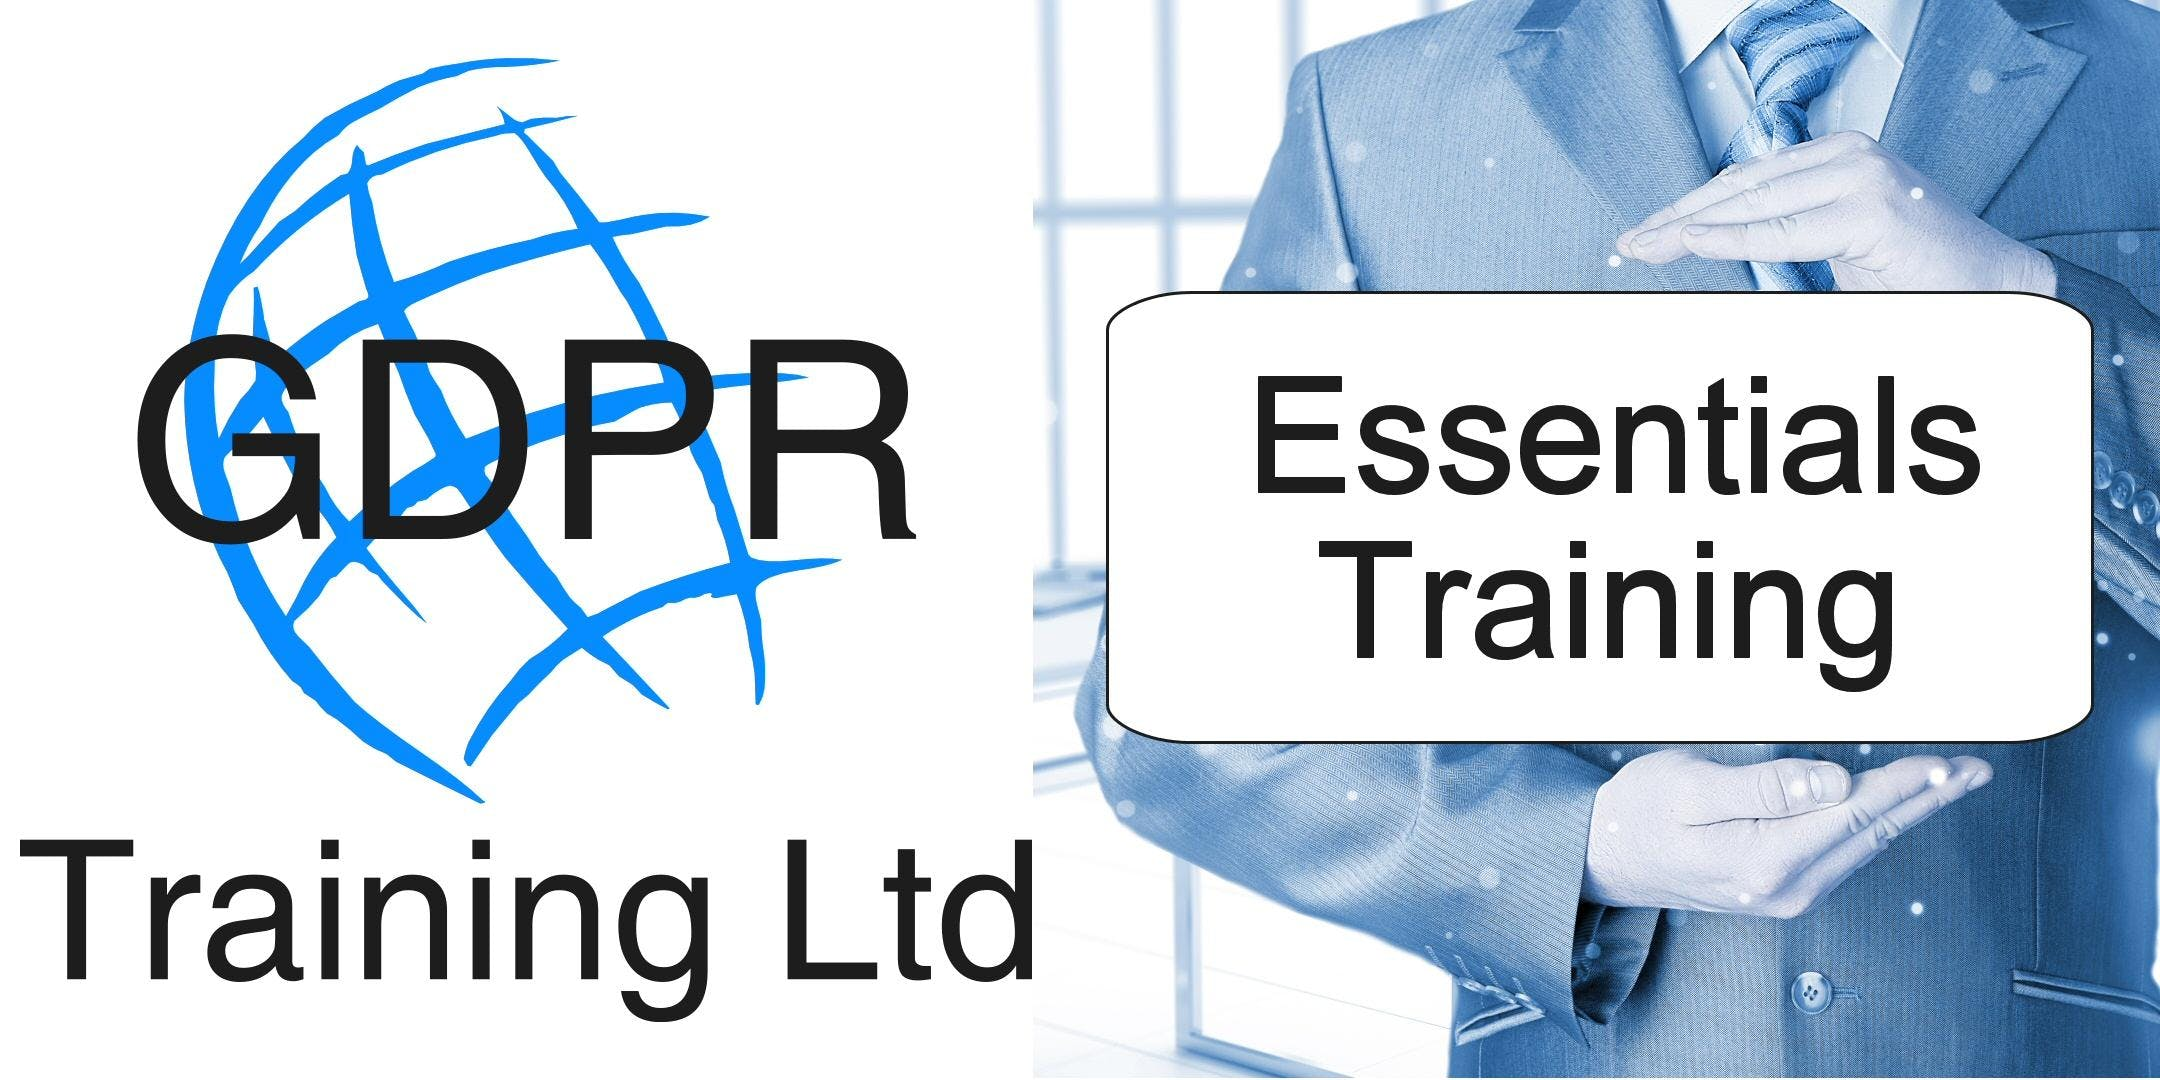 GDPR Essentials Training - A step by step gui